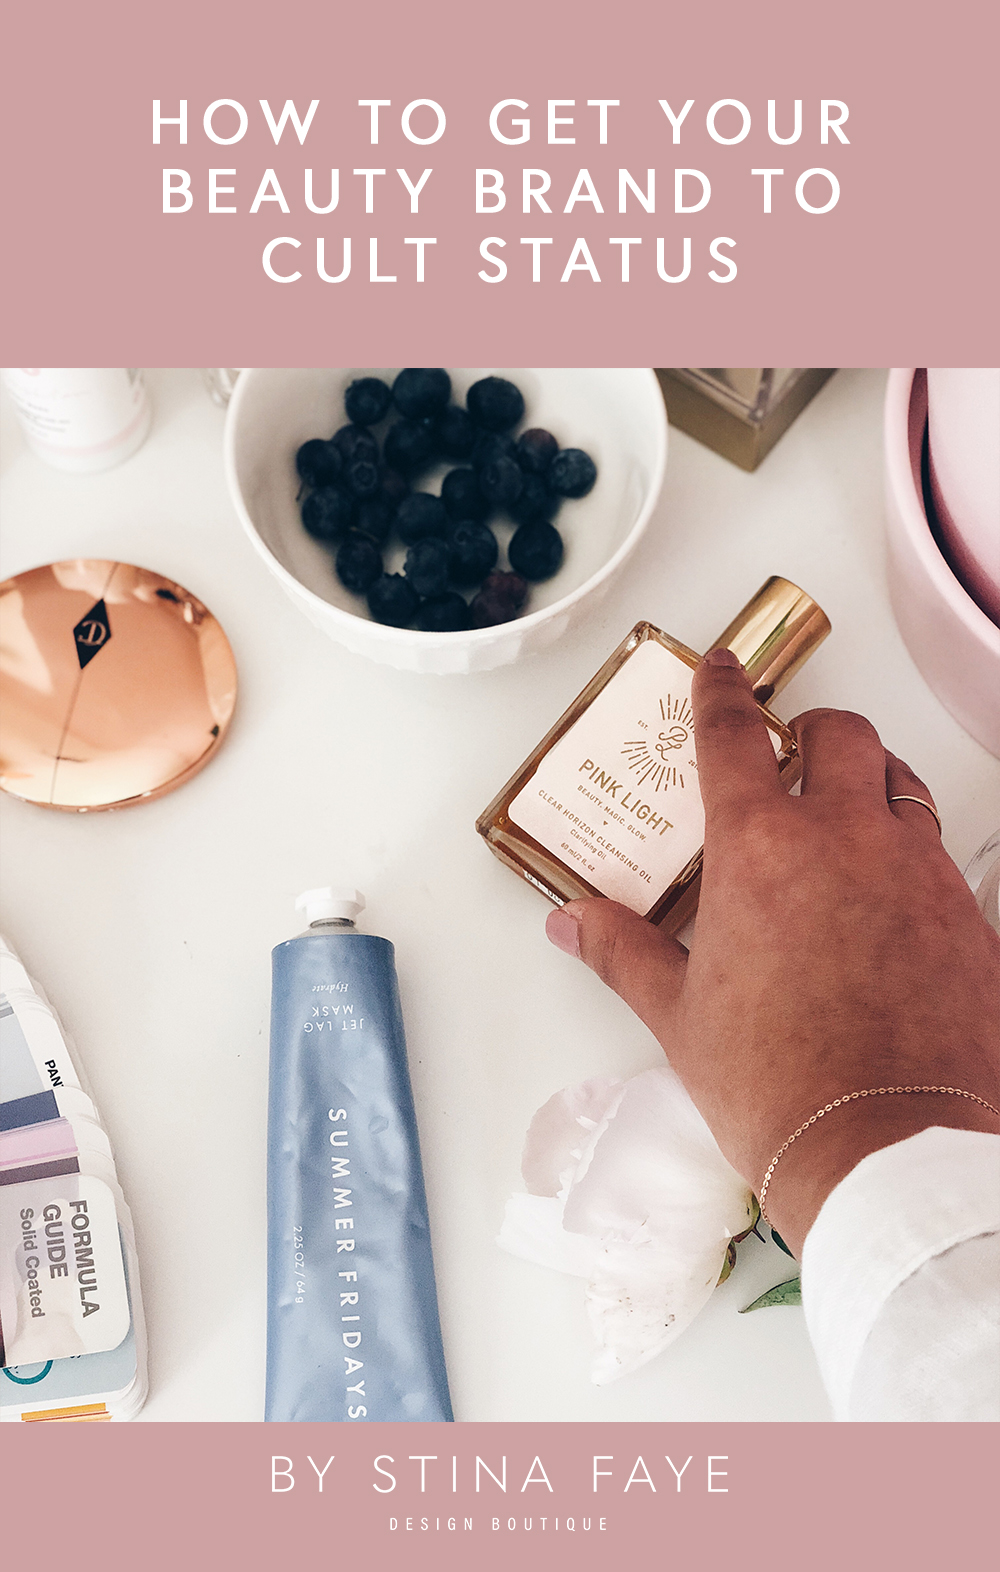 How to Get Your Beauty Brand To Cult Status